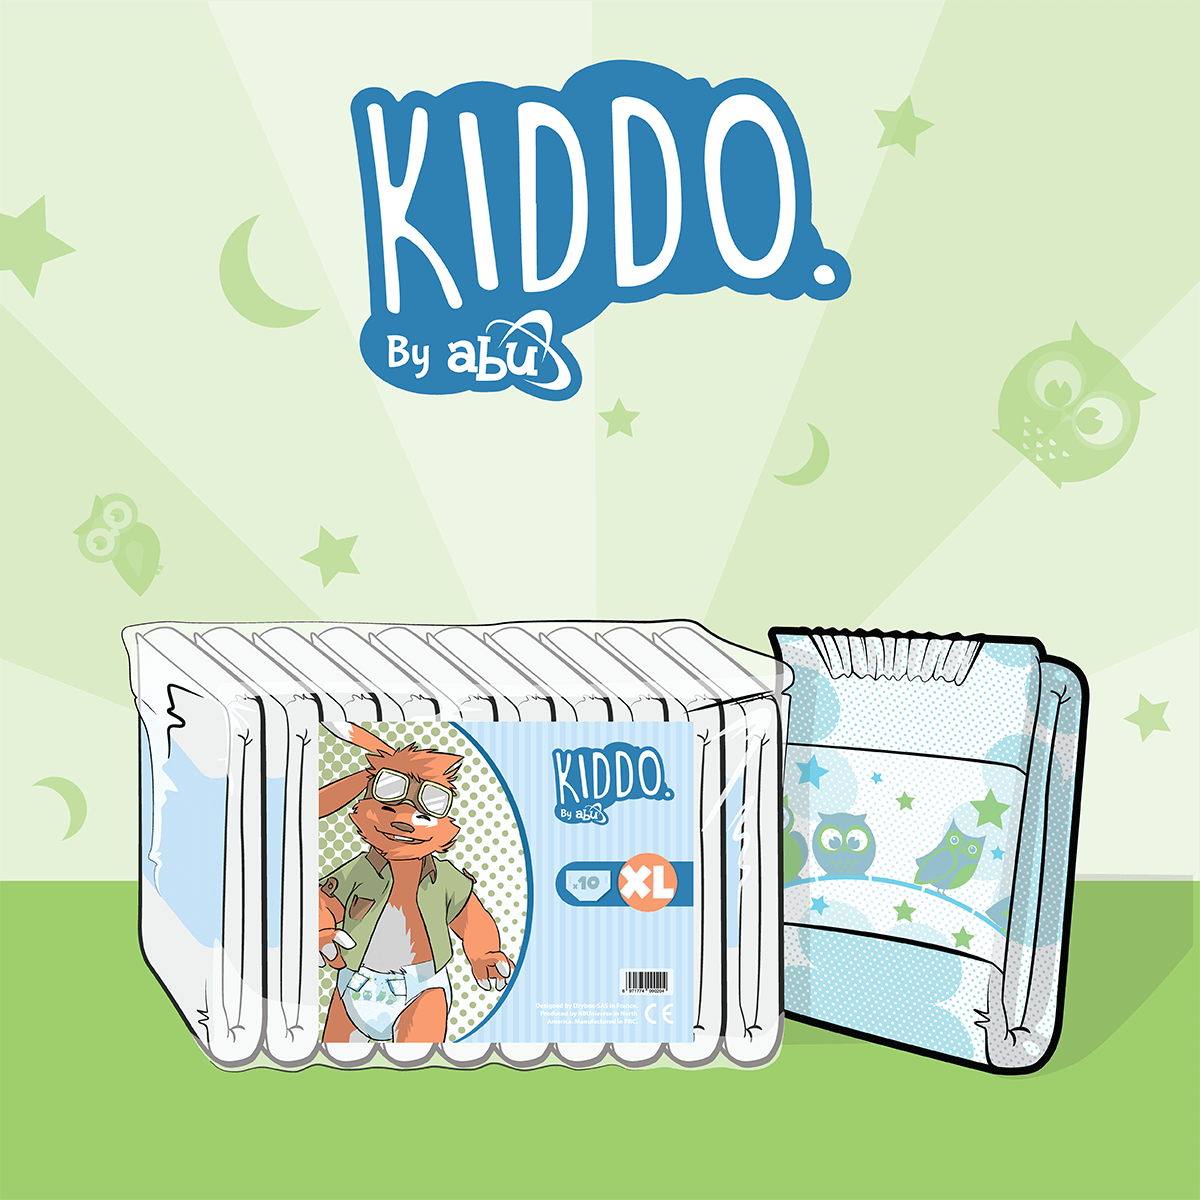 Small Pack of 10 ABU SDK Diapers